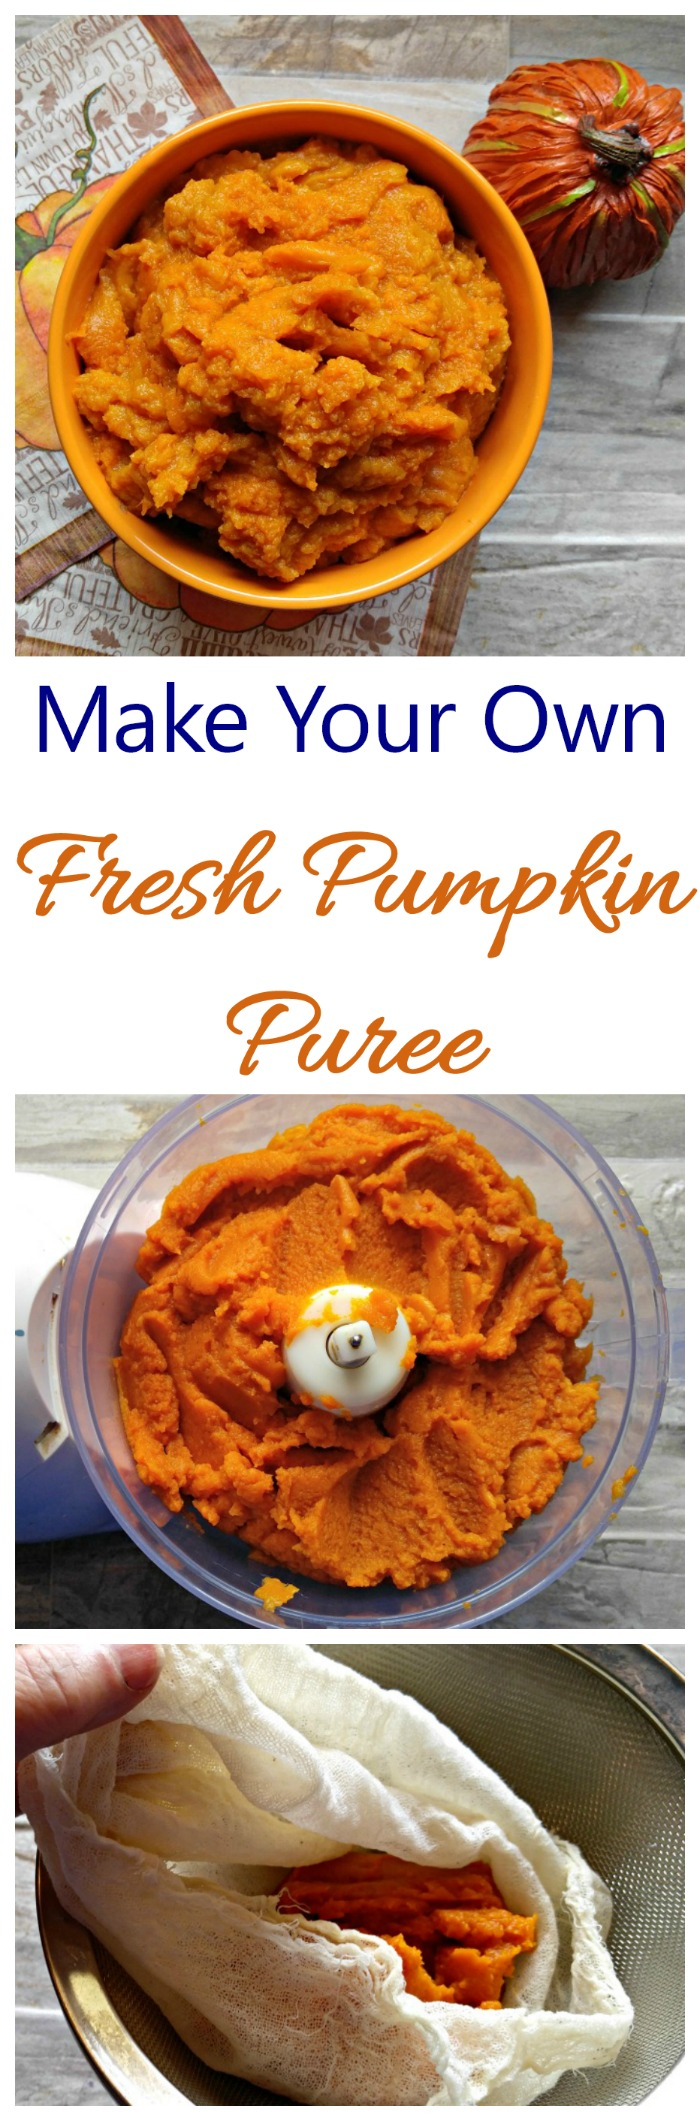 Fresh Pumpkin Puree - How to Make this Fall Staple